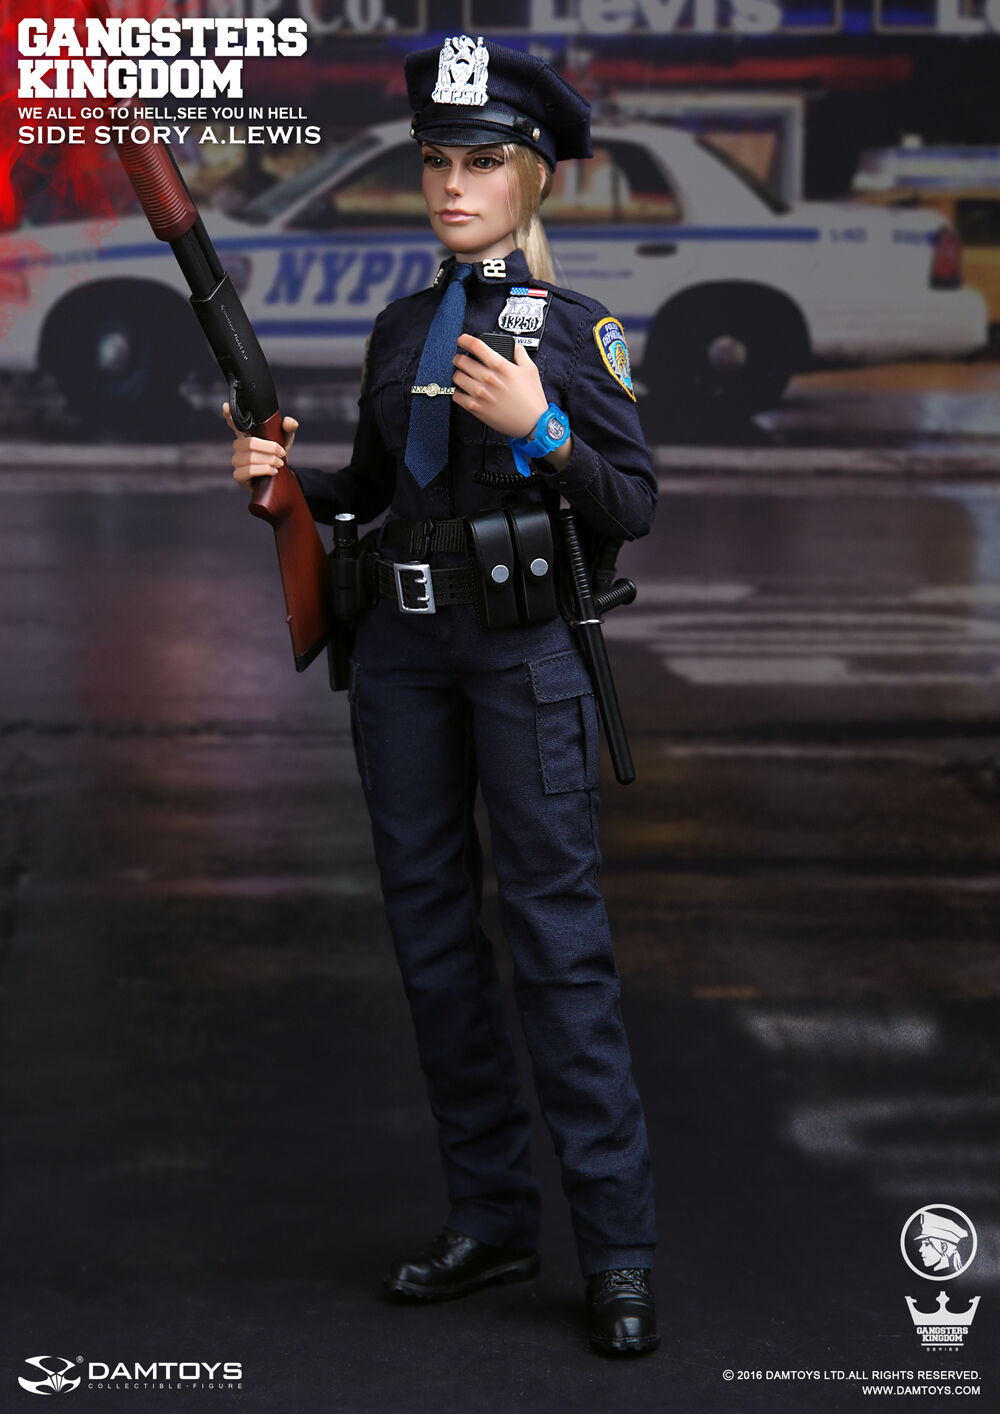 DAM Toys Gangsters Kingdom - SIDE STORY FEMALE OFFICER A.LEWIS 1 6 Figure